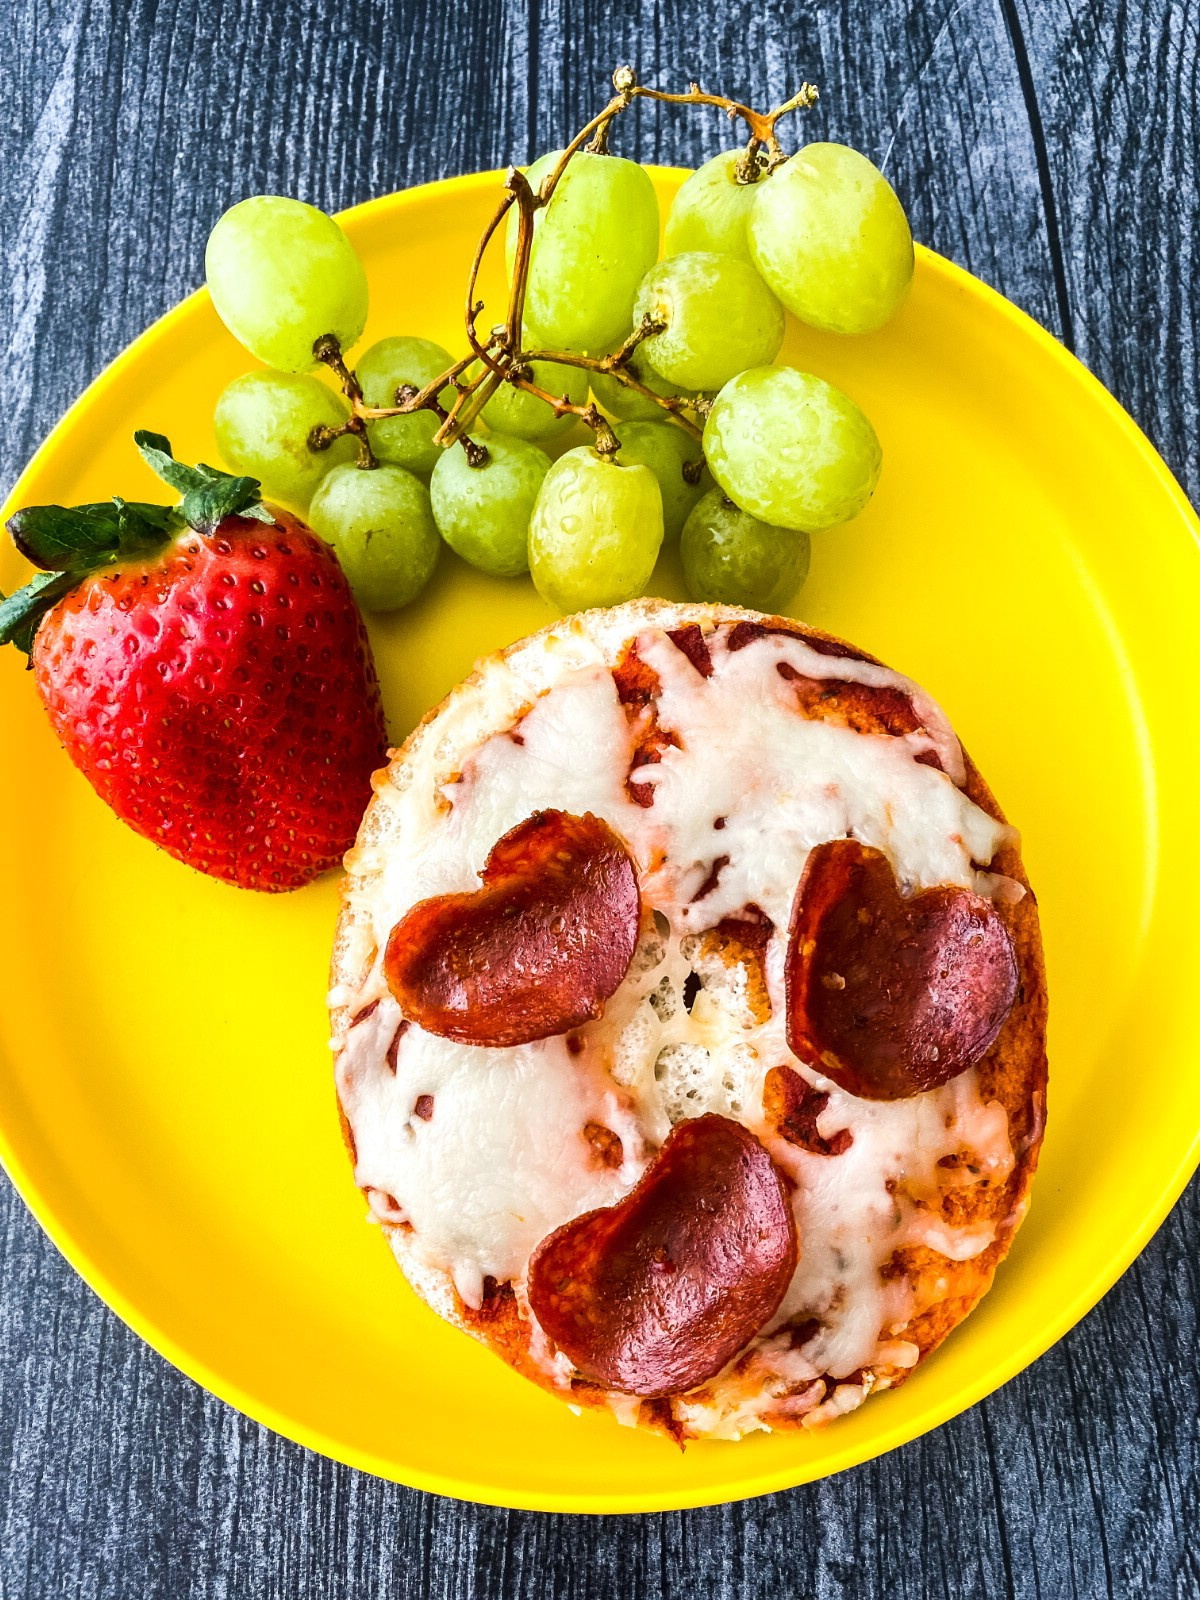 Yellow plate with mini pizza and fruit